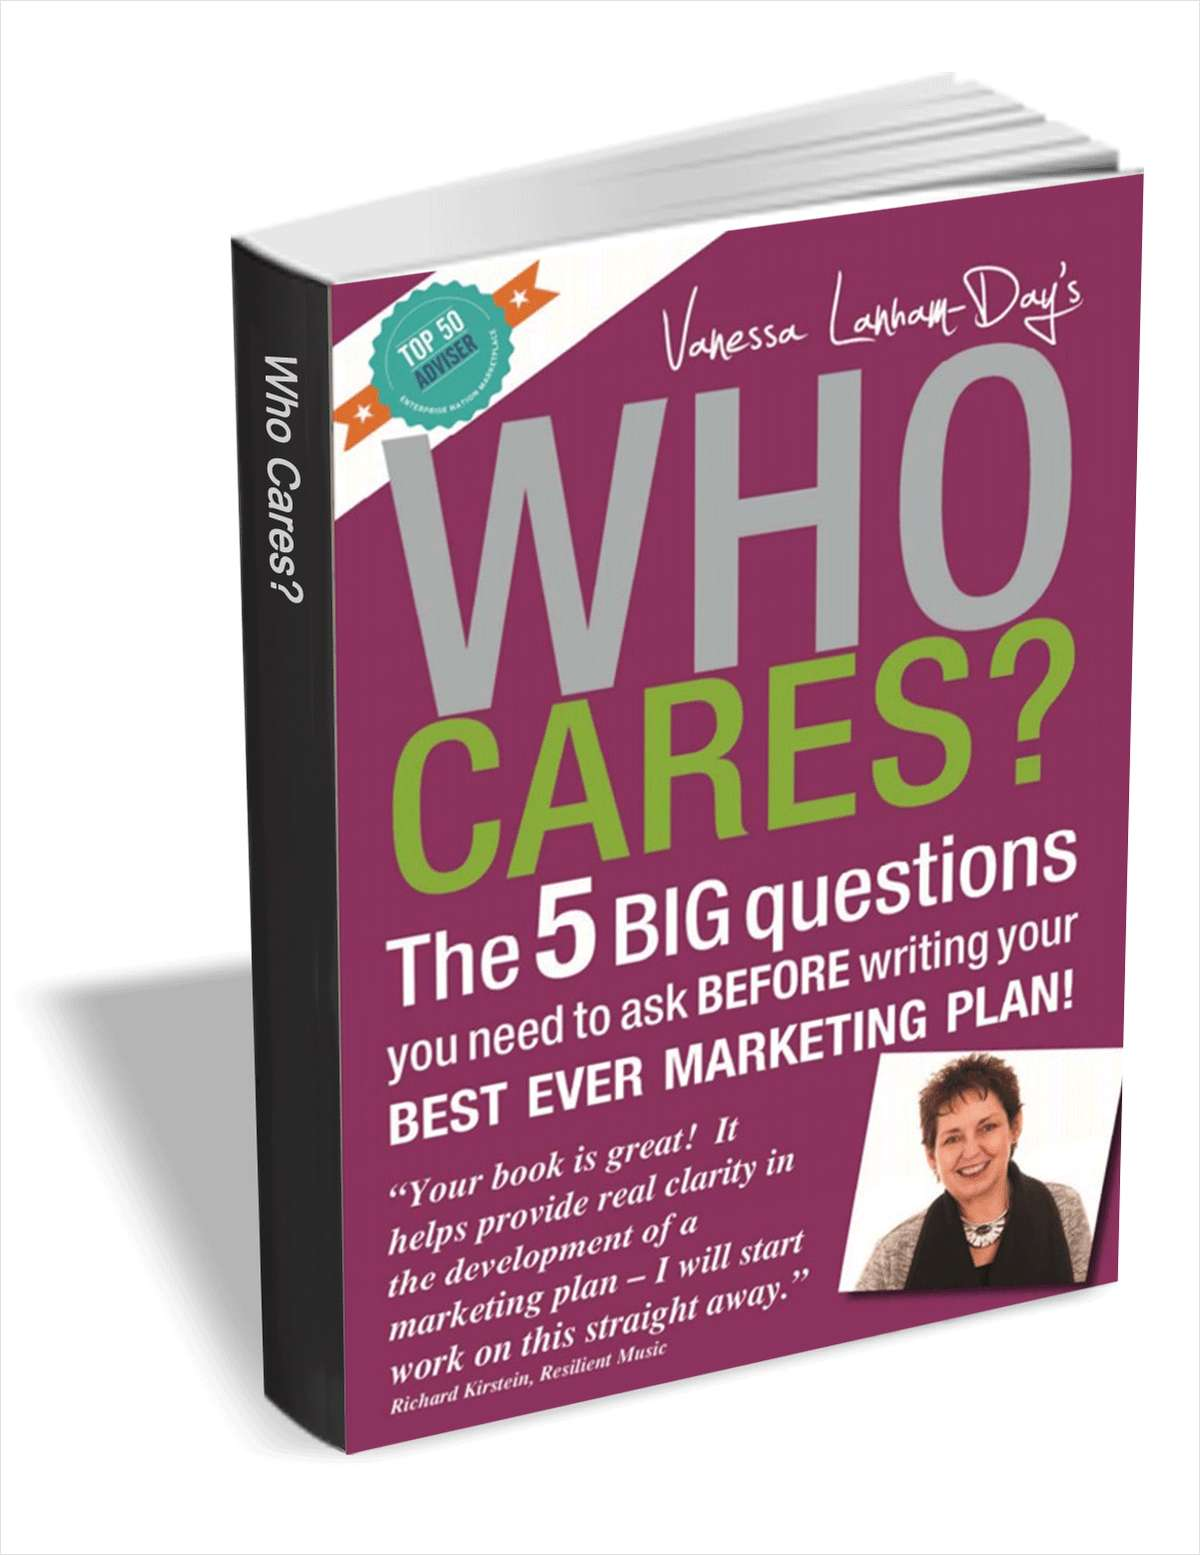 Who Cares? The 5 Big Questions You Need to Ask Before Writing Your Best Ever Marketing Plan